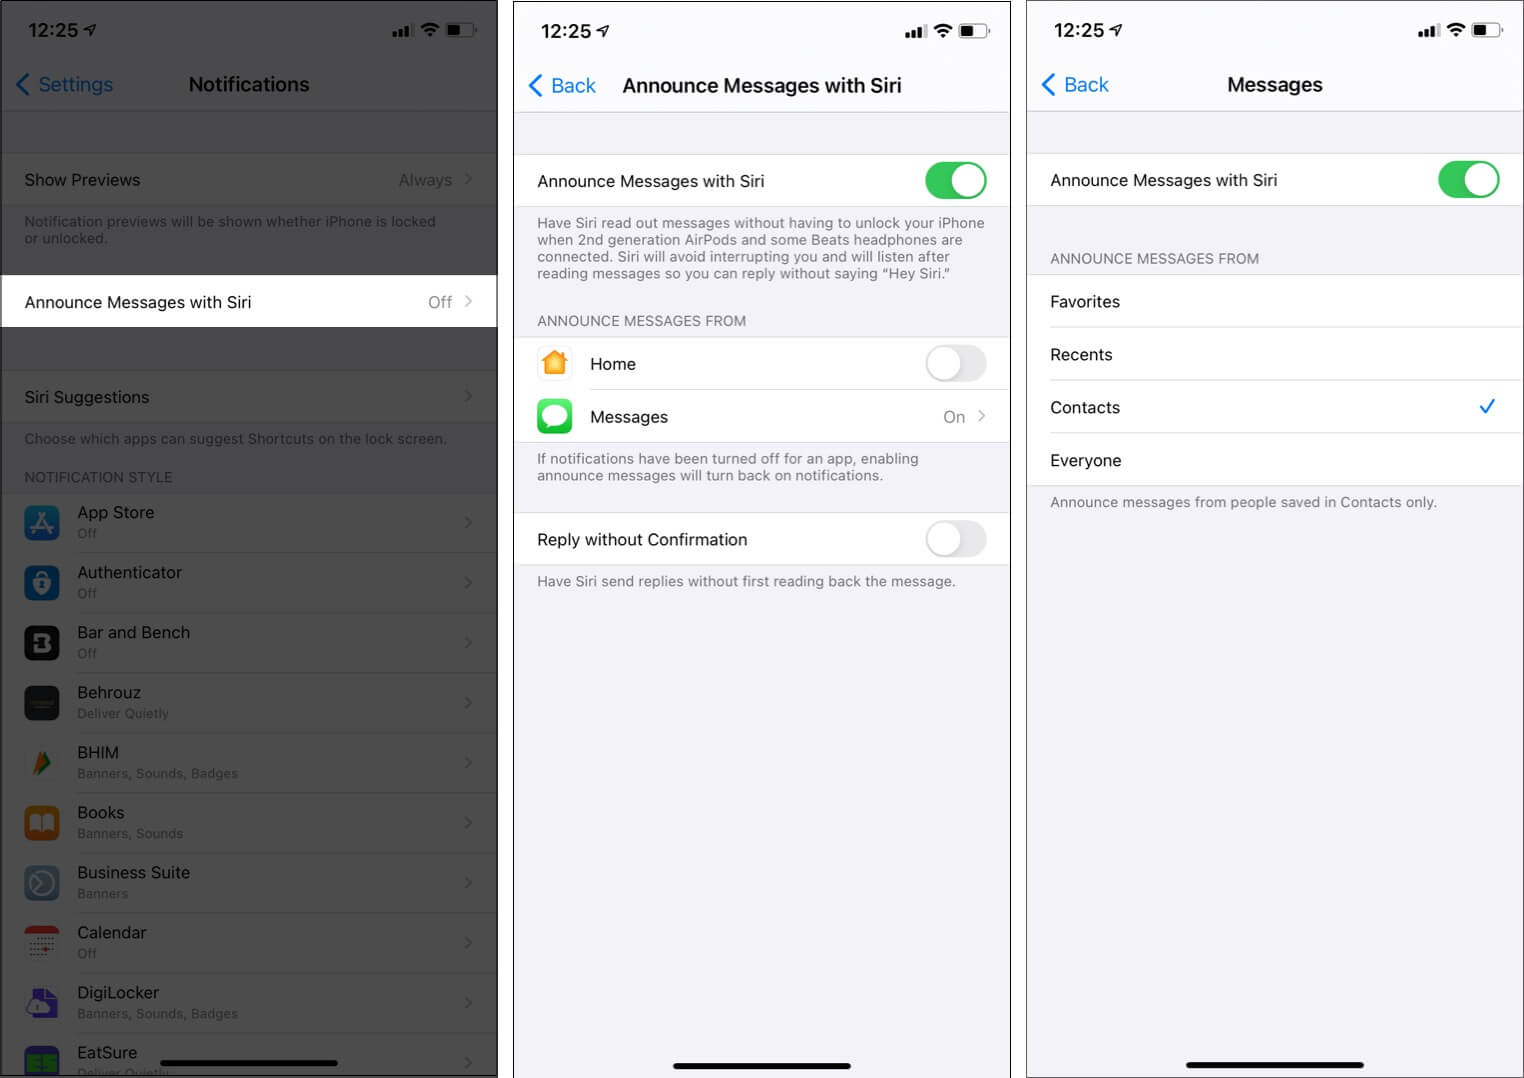 Announce Messages with Siri